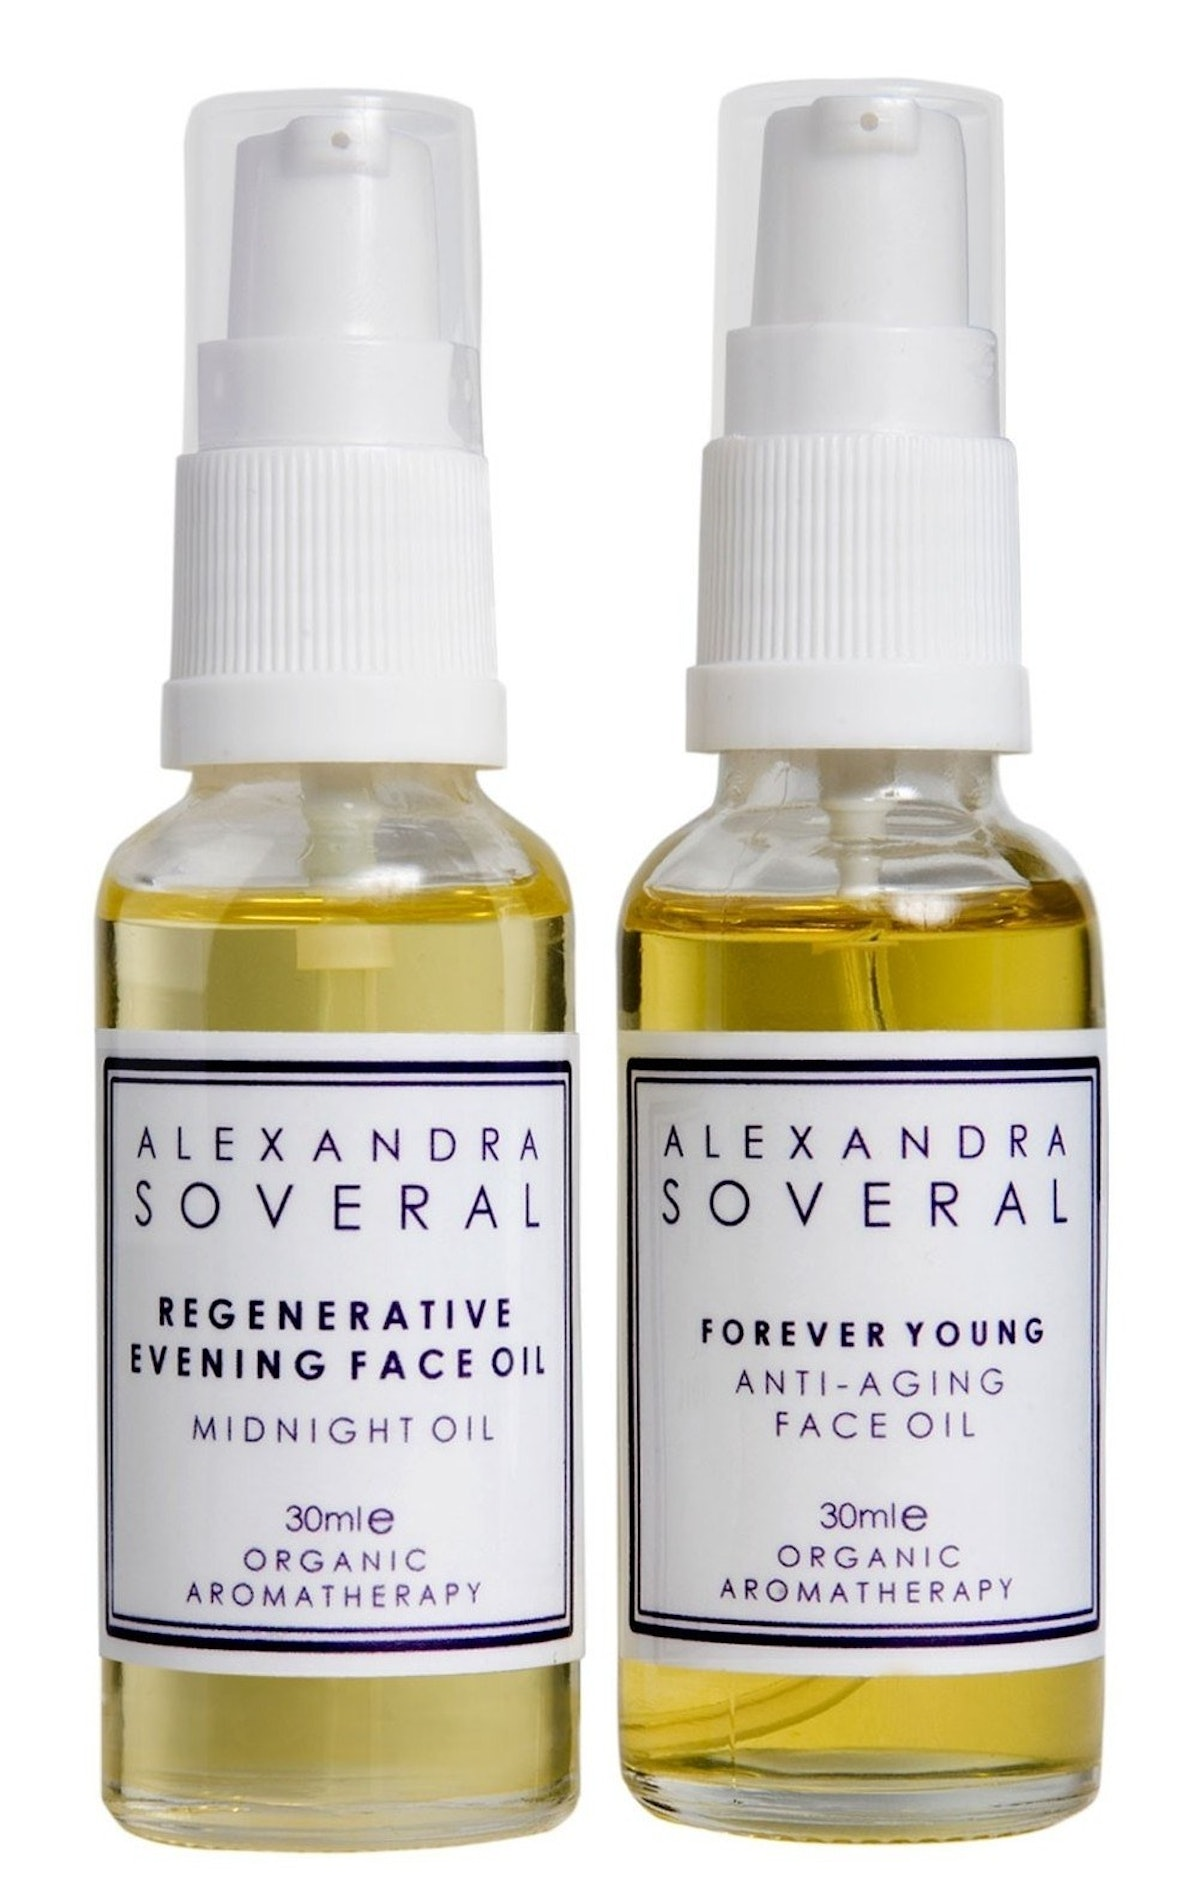 Forever Young Anti Aging Face Oil, $80, [alexandrasoveral.co.uk](http://alexandrasoveral.co.uk/ourshop/prod_203315-FOREVER-YOUNG.html).